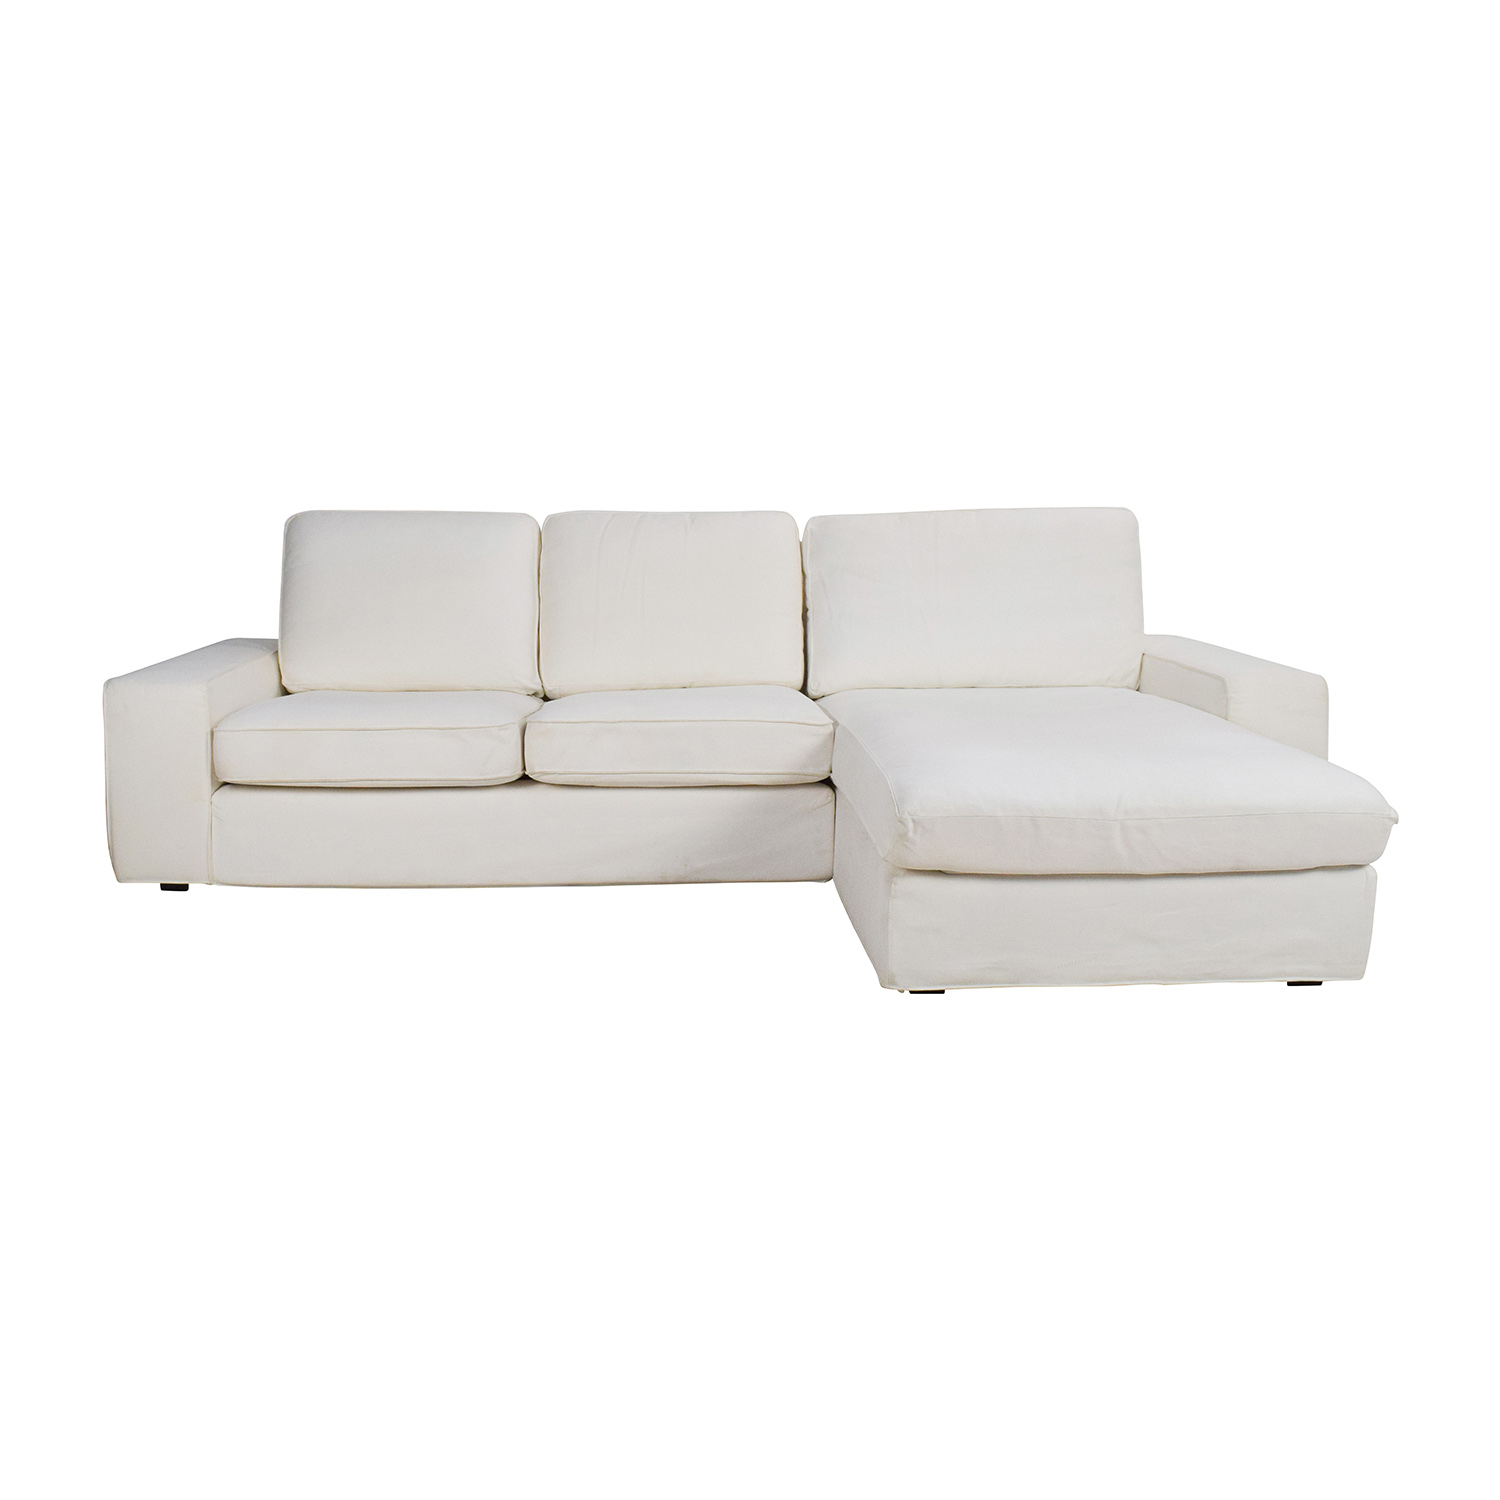 IKEA IKEA Kivik Sofa and Chaise Sofas